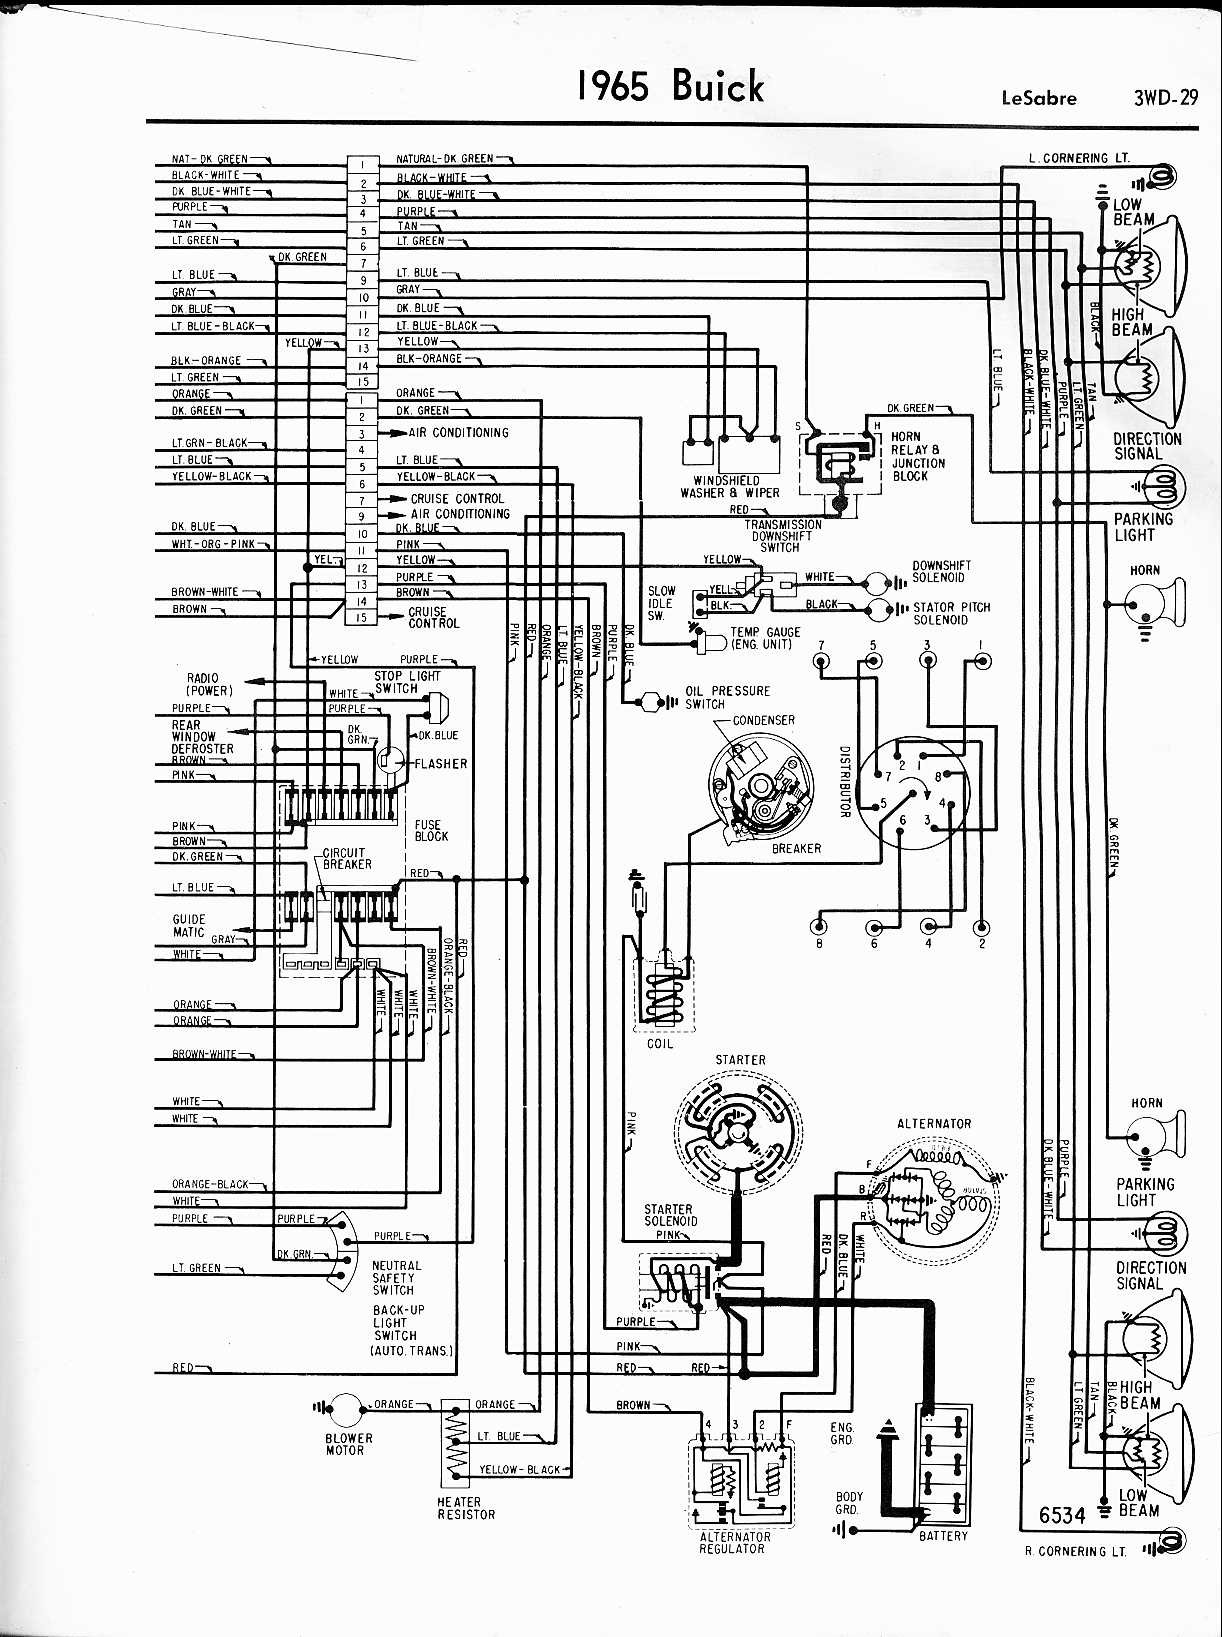 2000 Mustang Engine Diagram Blower Motor Wiring Diagram